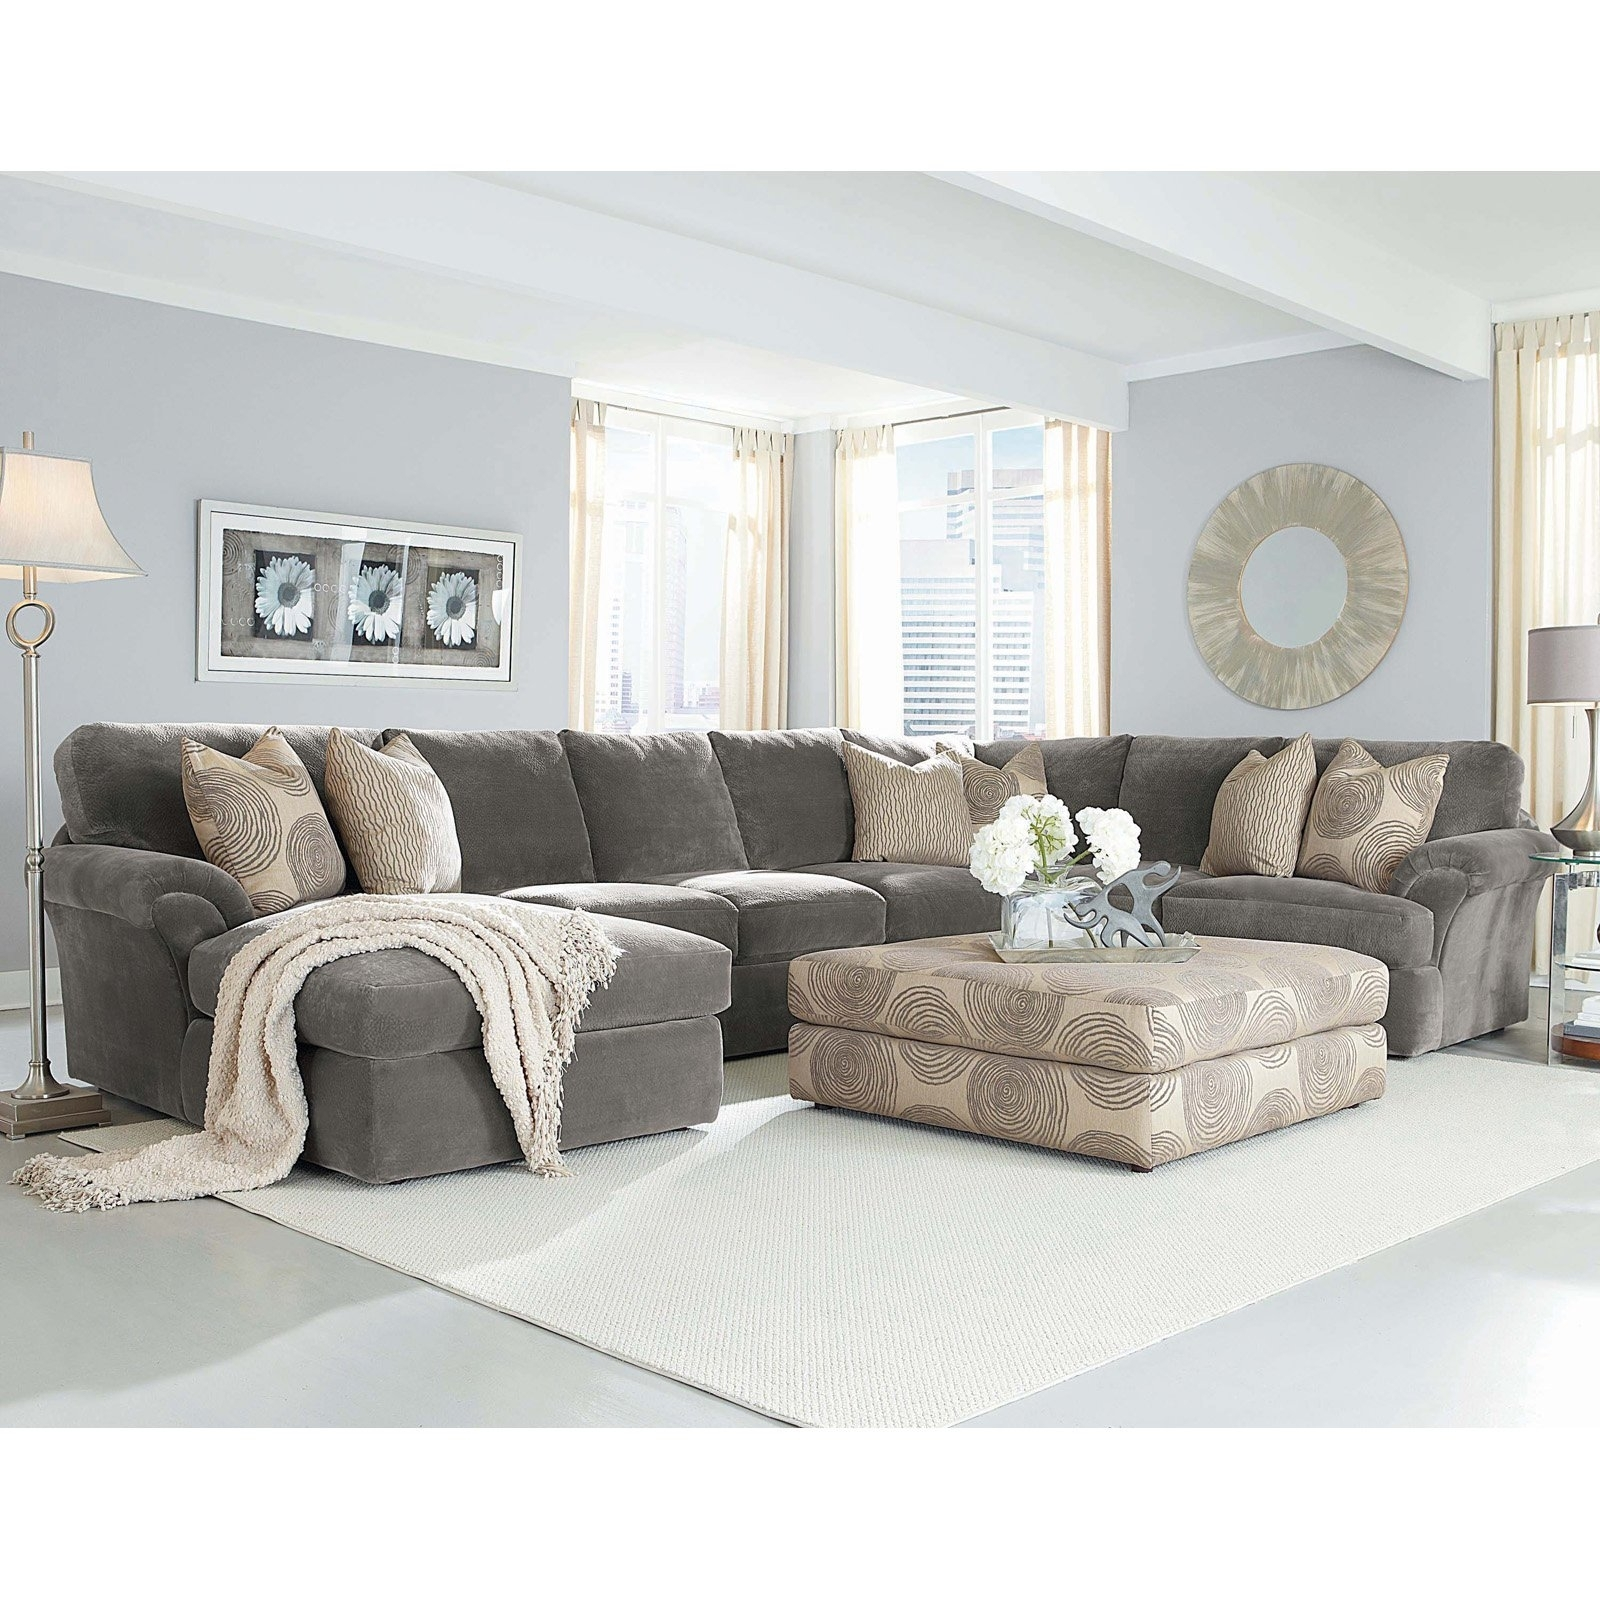 Elliot Sectional Sofa 3 Piece Chaise